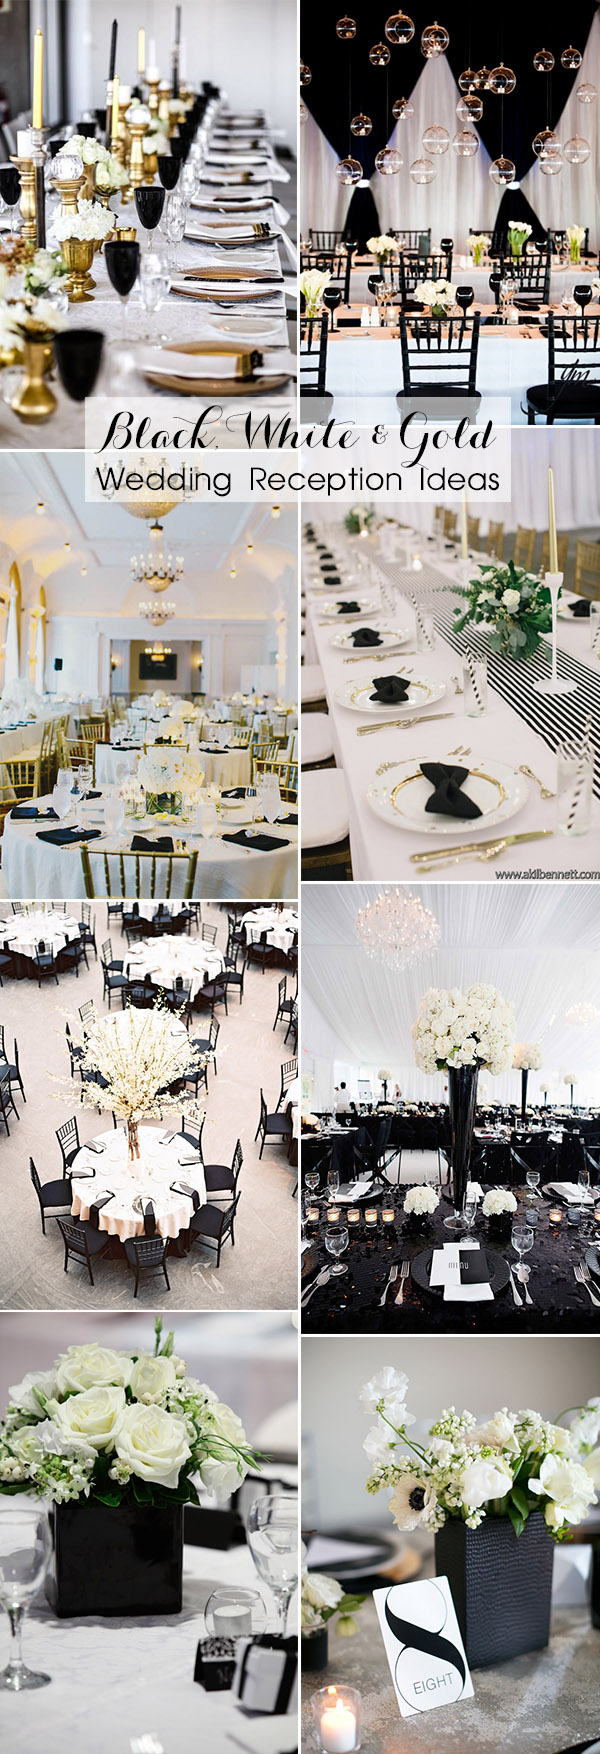 40 most inspiring classic black and white wedding ideas inspring black white and gold wedding reception decorating ideas junglespirit Choice Image